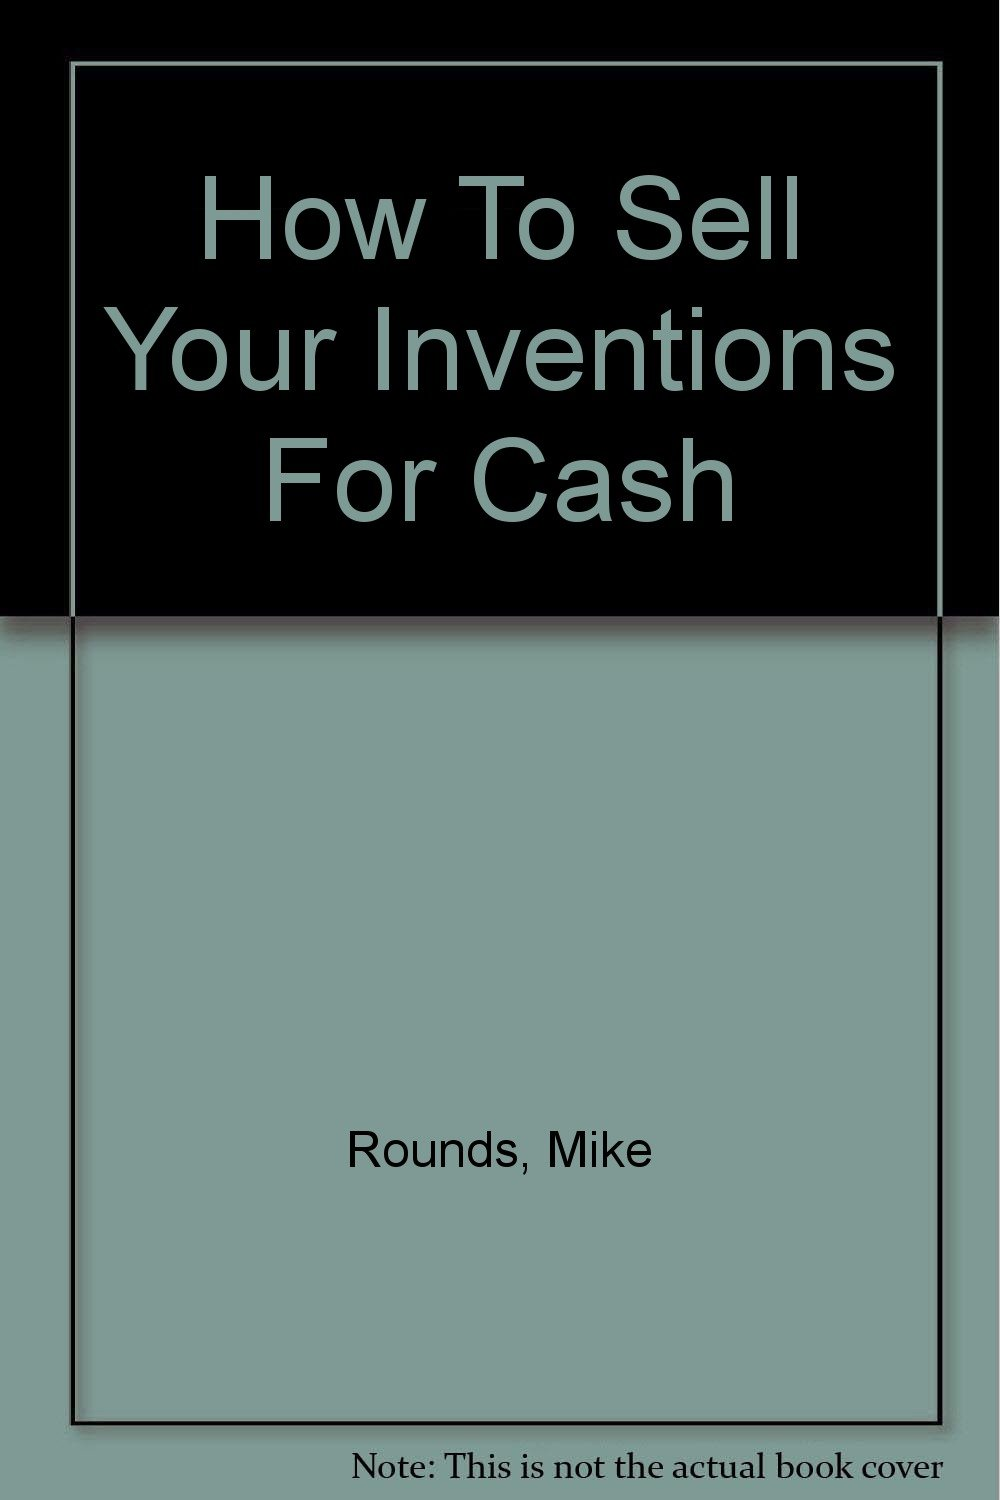 How To Sell Your Inventions For Cash pdf